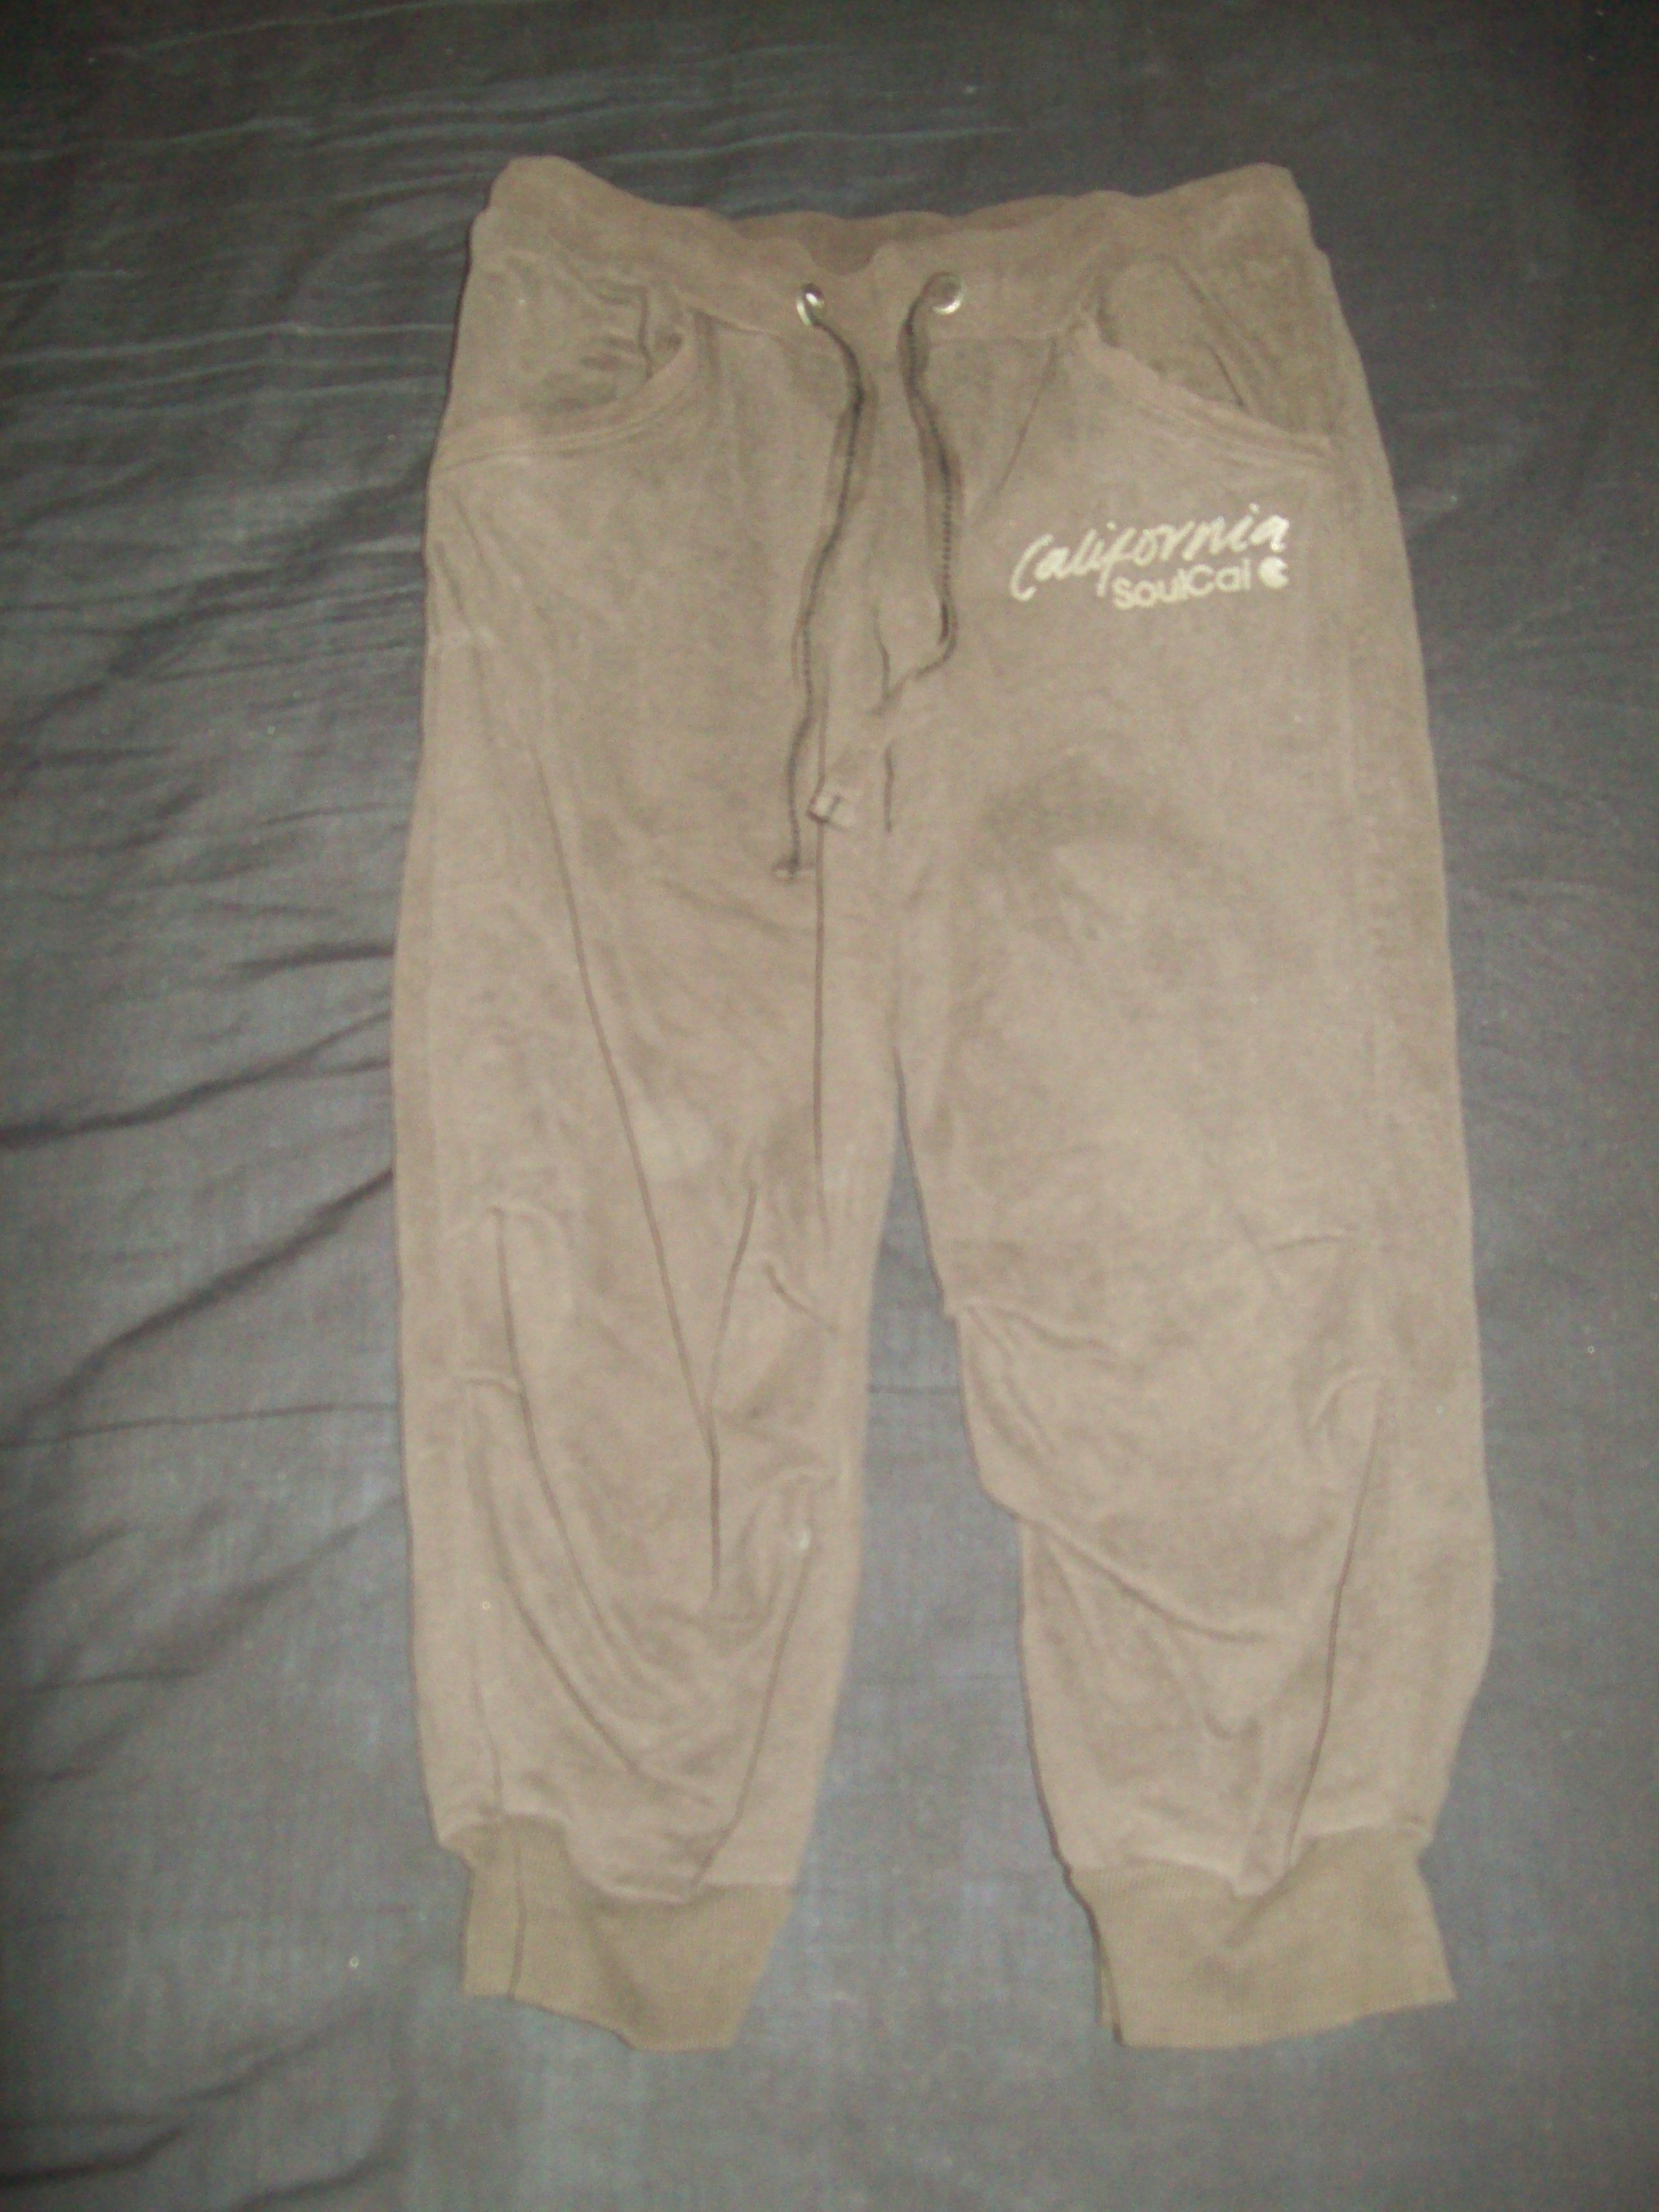 Women's brown cropped jogging style trousers in good used condition £2.50